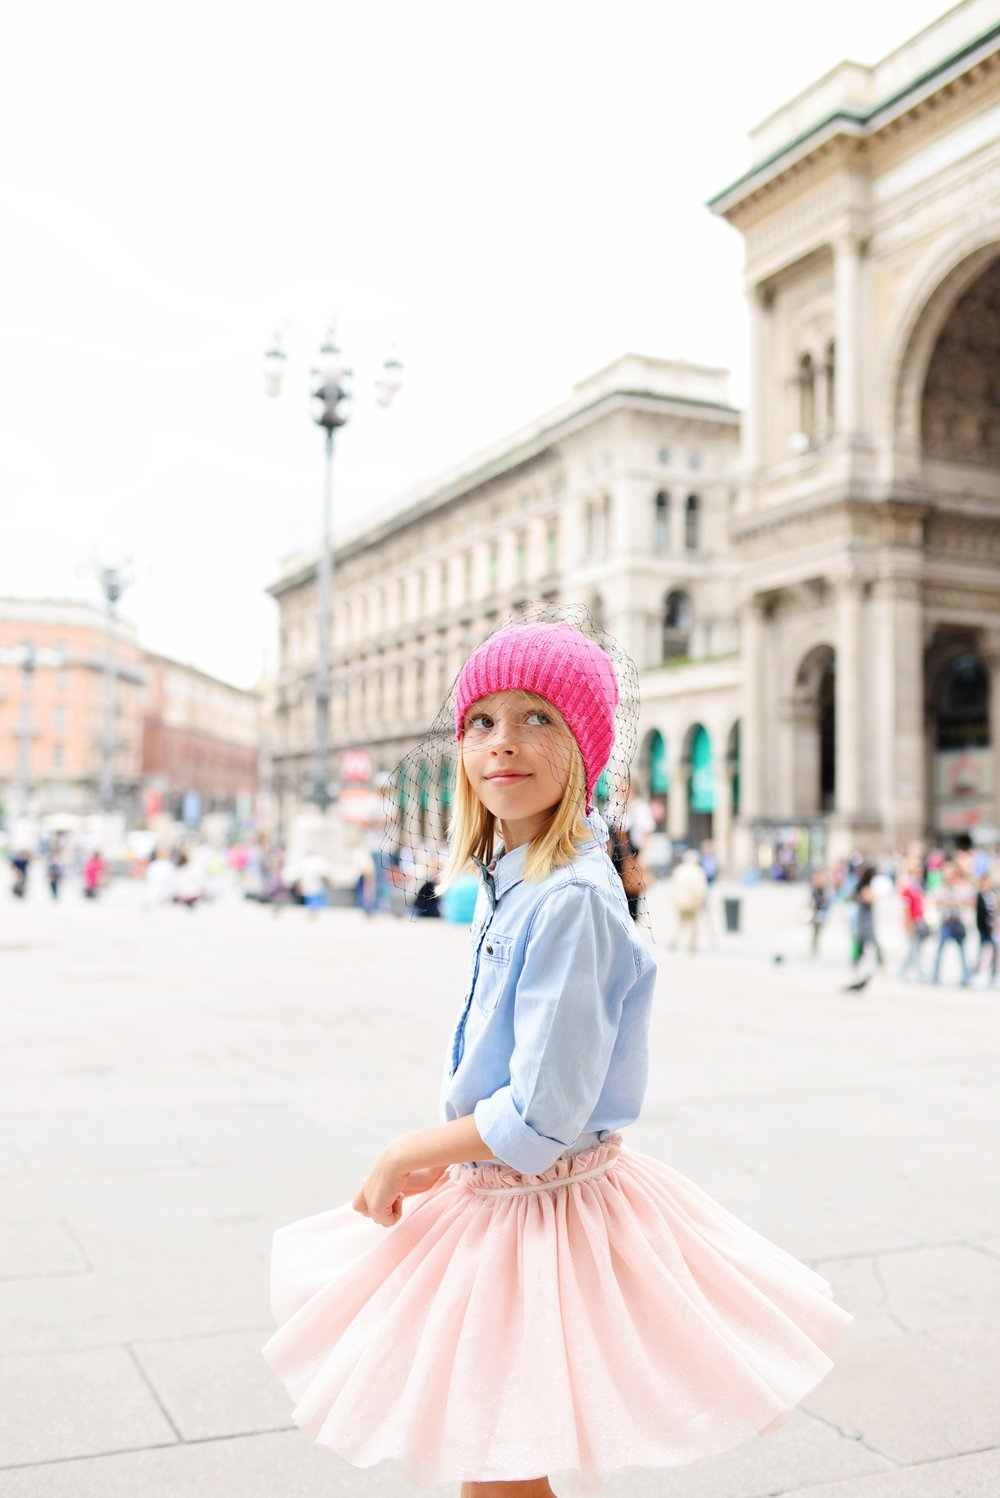 Enfant+Street+Style+by+Gina+Kim+Photography-6.jpeg